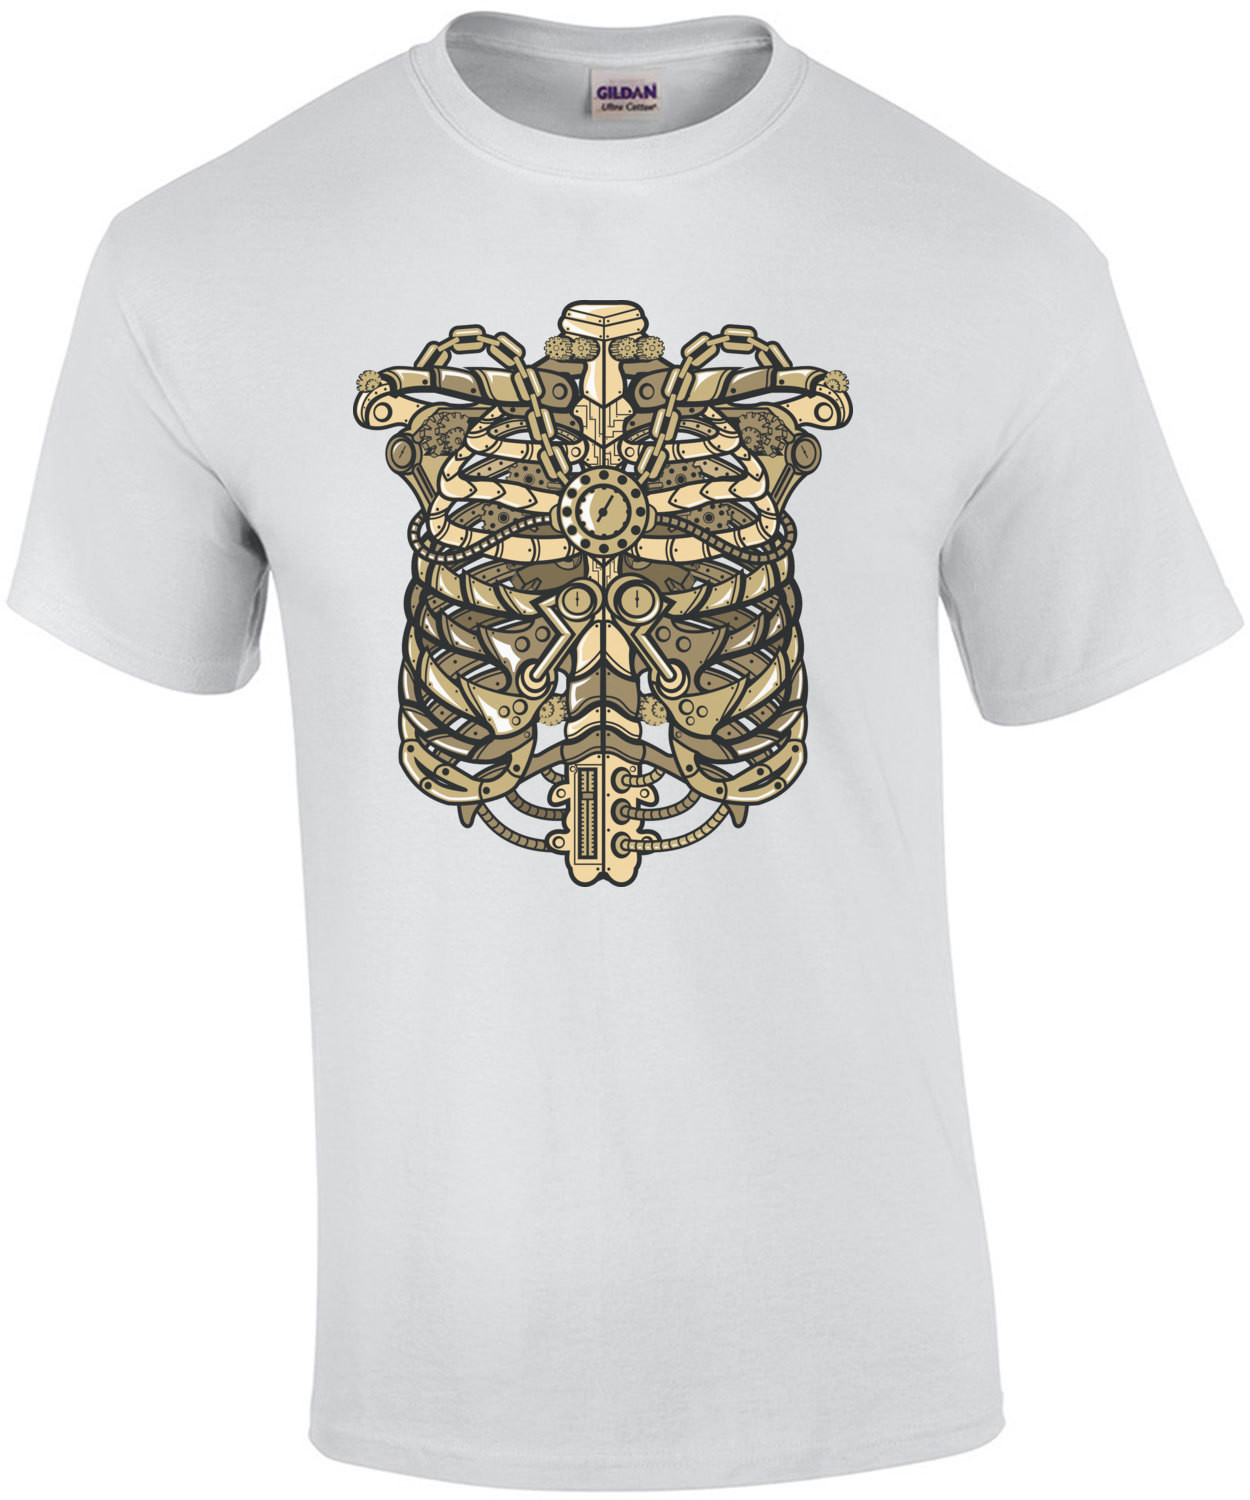 Vintage Steampunk Ribcage T-Shirt